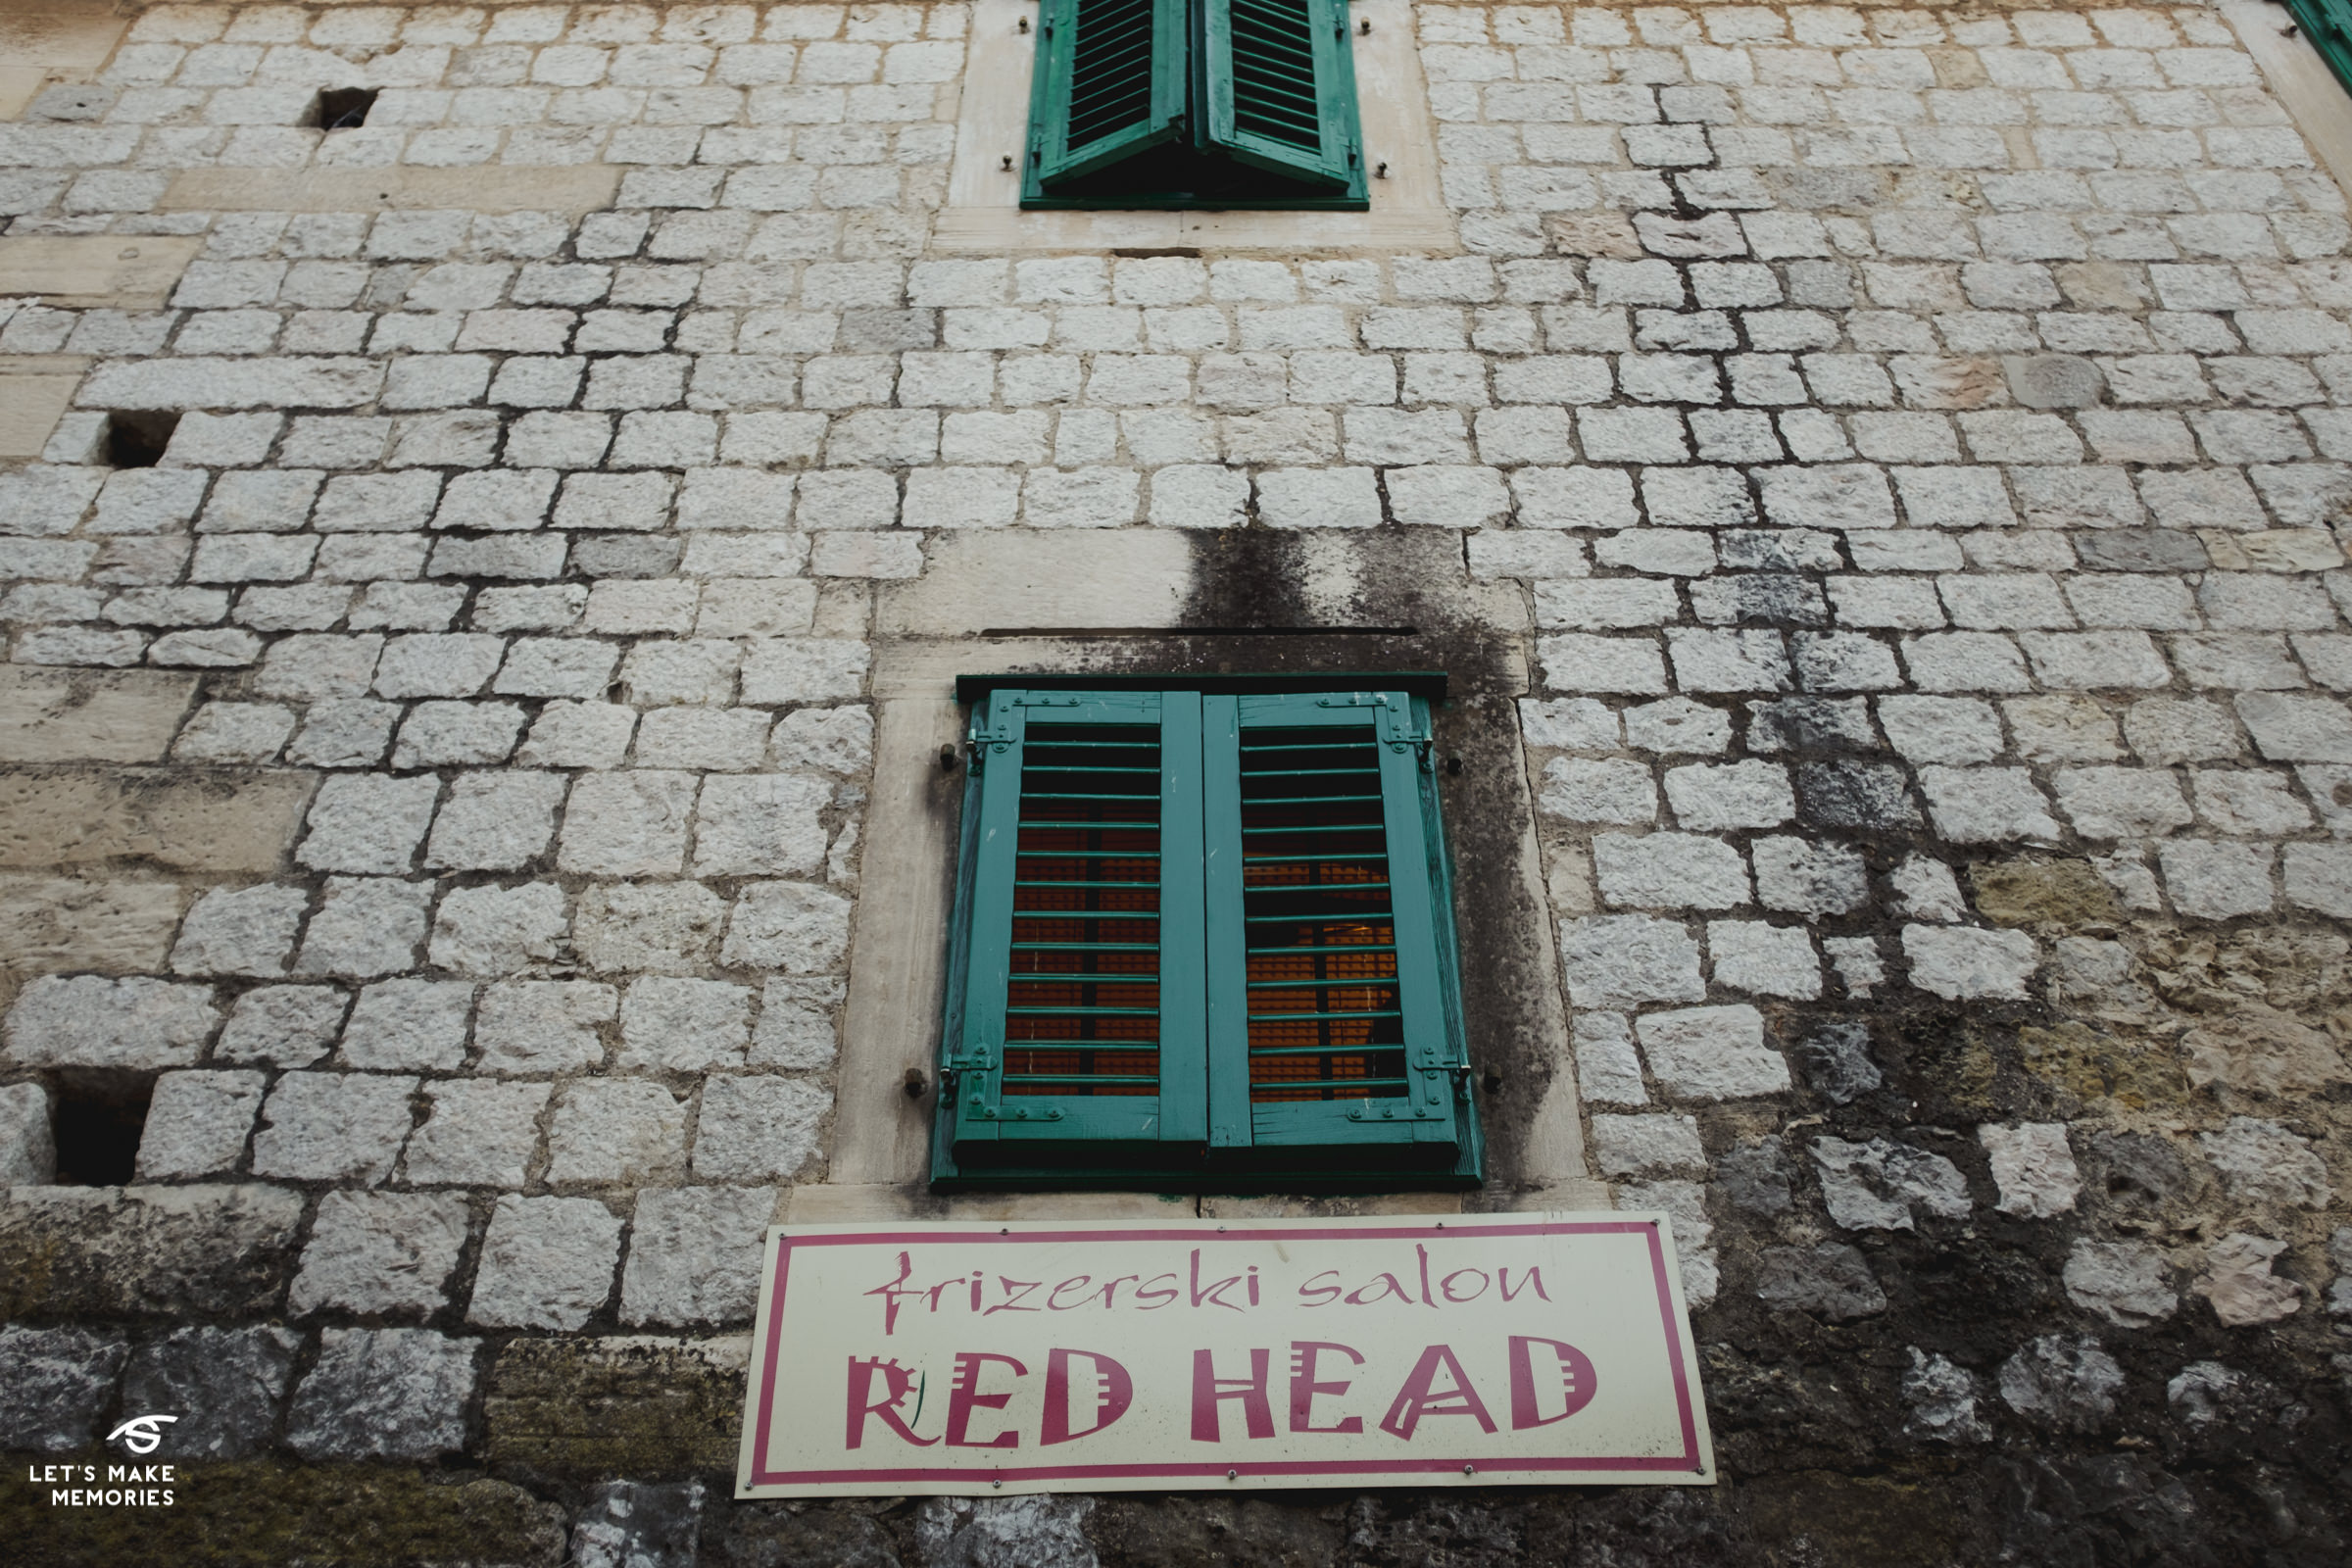 red head hair salon in Sinj, Croatia